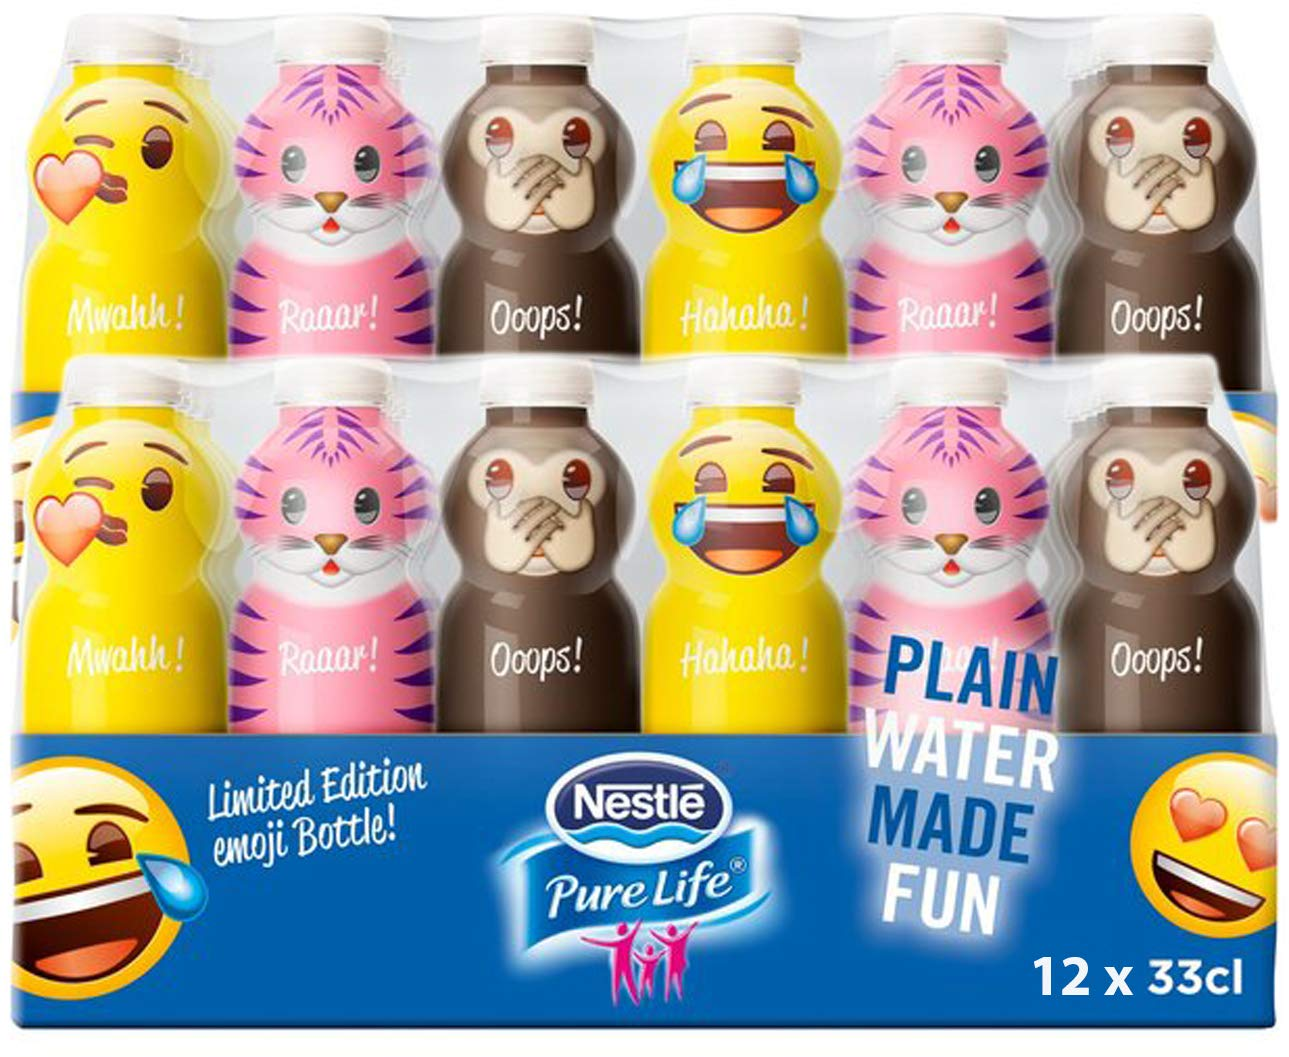 Nestle Water Emoji Pure Life Limited Edition Emoji Bottled Purified  Drinking Water, 11 15 Fl Oz (Pack of